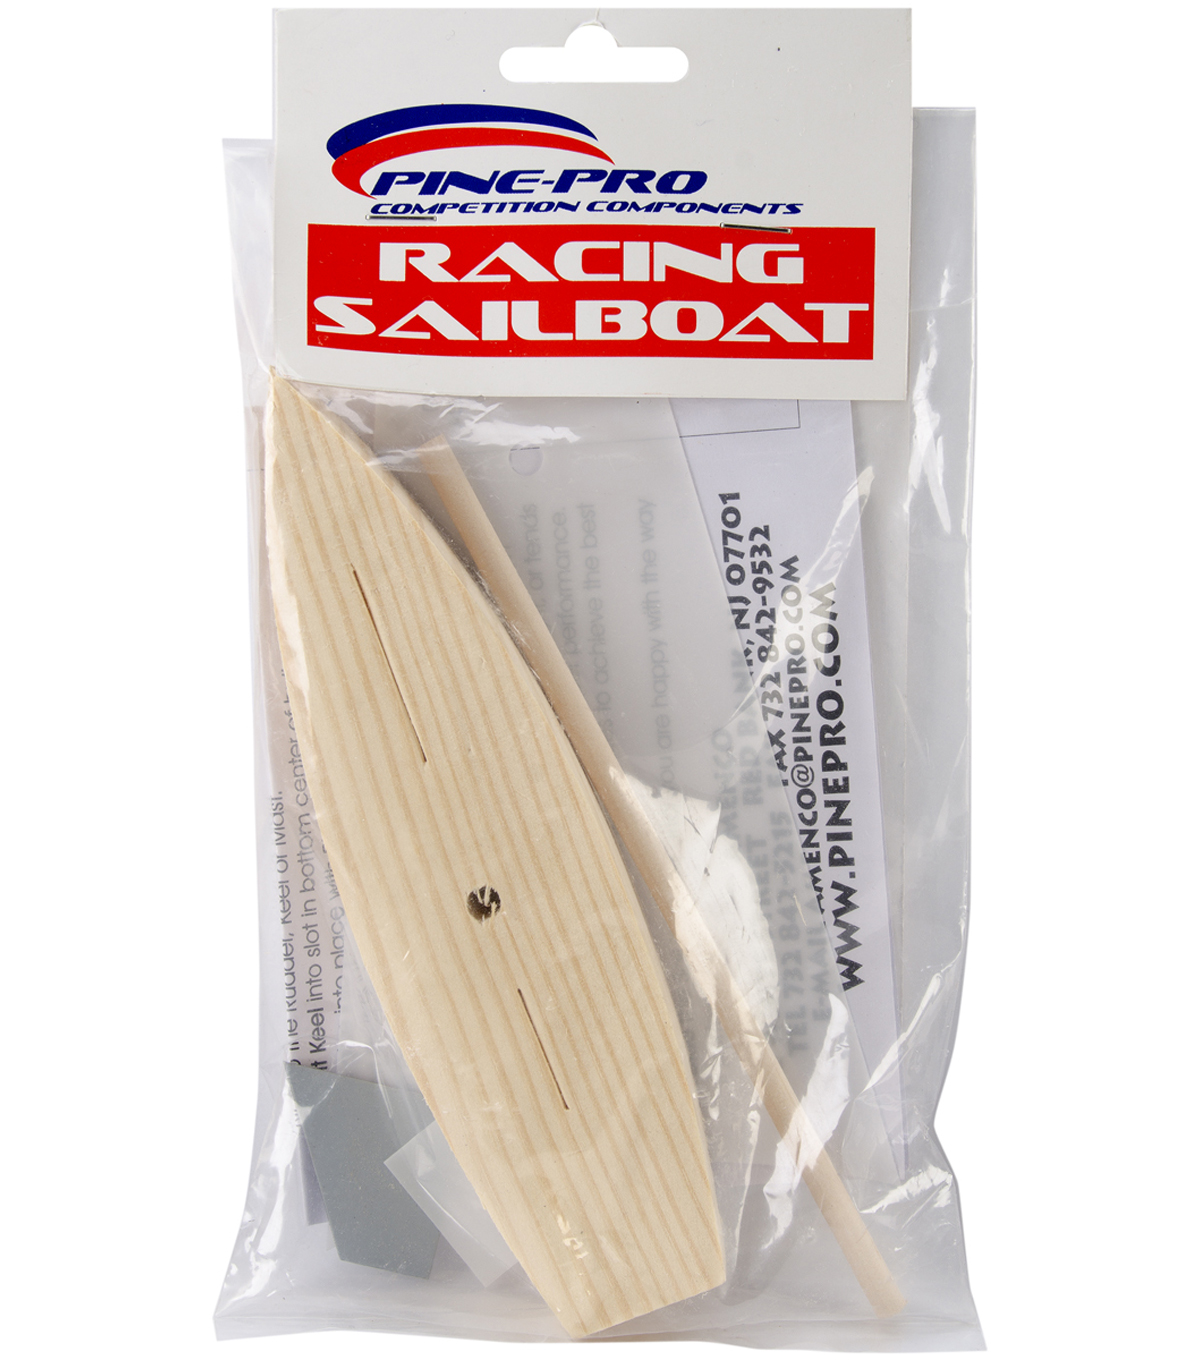 Pine Car Derby Racing Sailboat